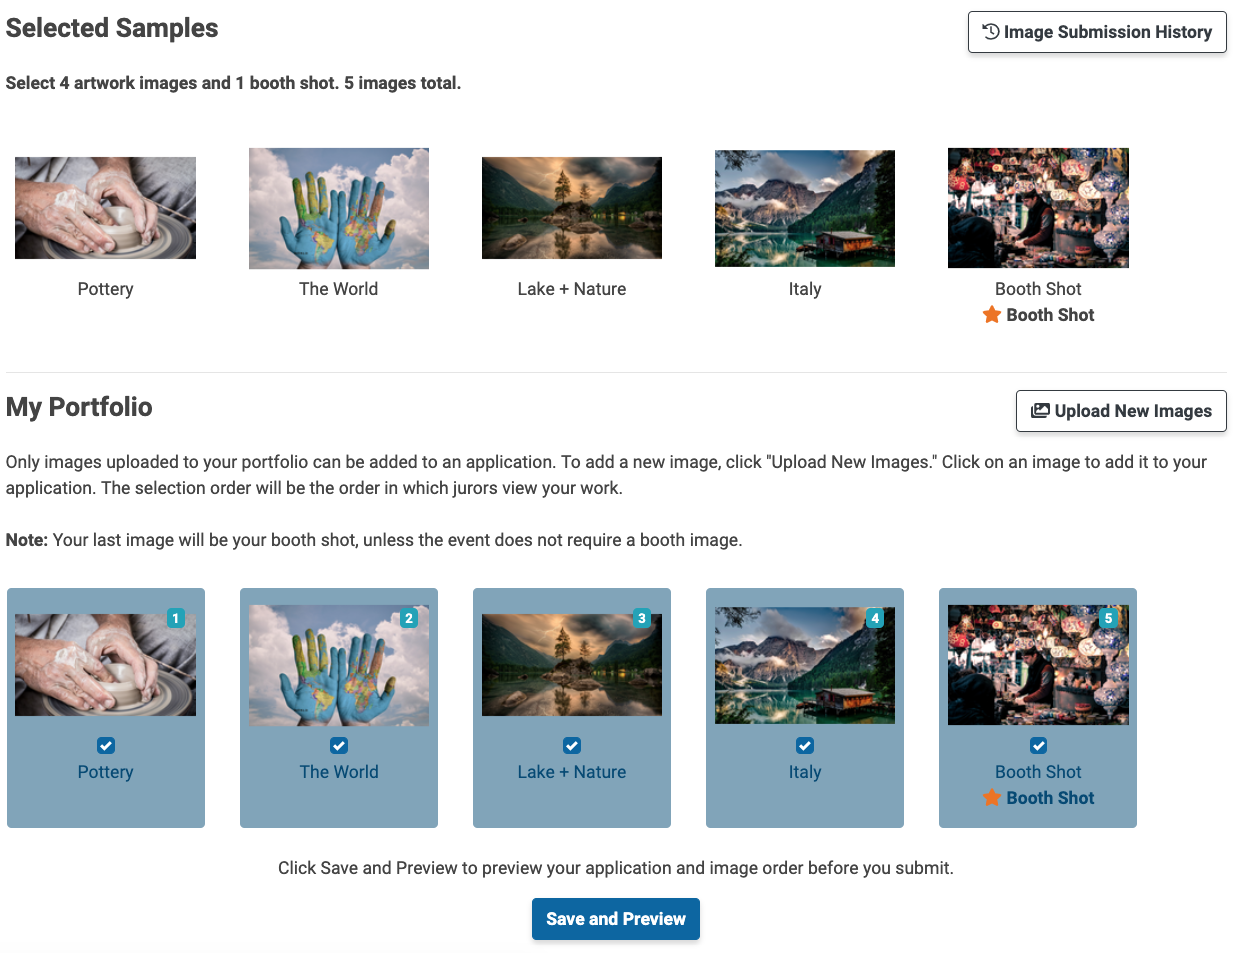 In the application, artists can select images from their portfolio to attach the application. This screenshot displays the image selection of the portfolio.